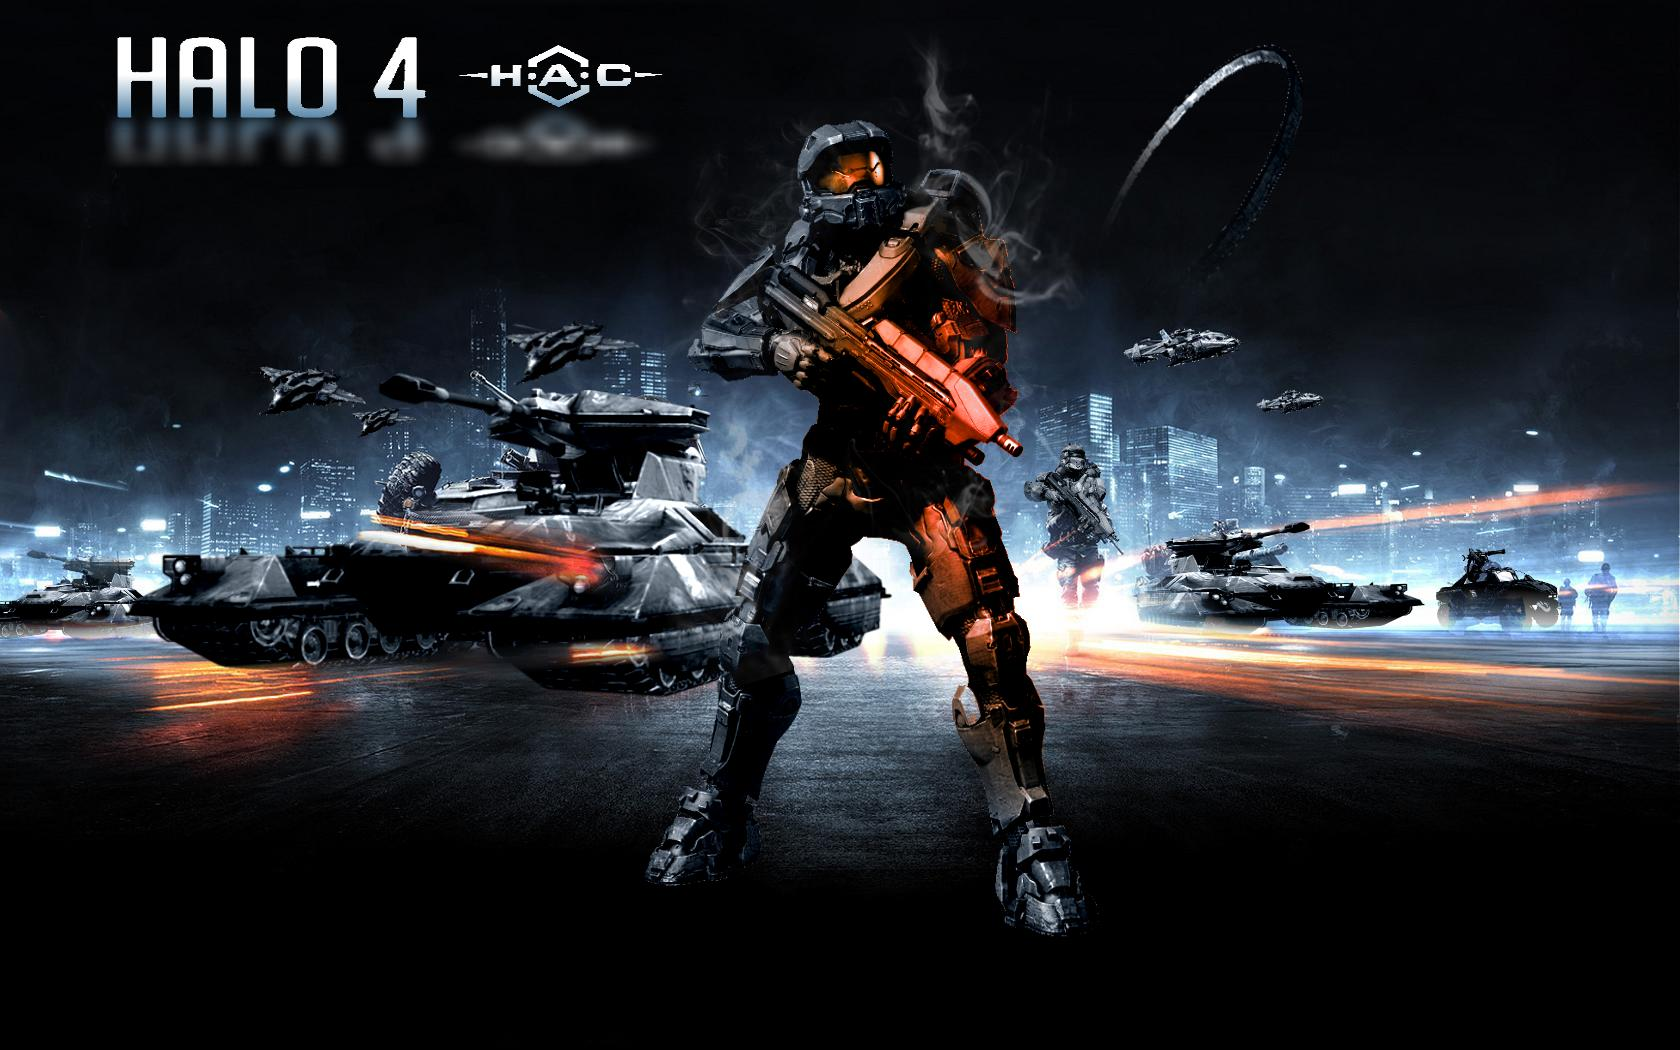 Halo wallpapers hd wallpapersafari halo wallpaper hd wallpapers in games imagesci com 1680x1050 voltagebd Image collections